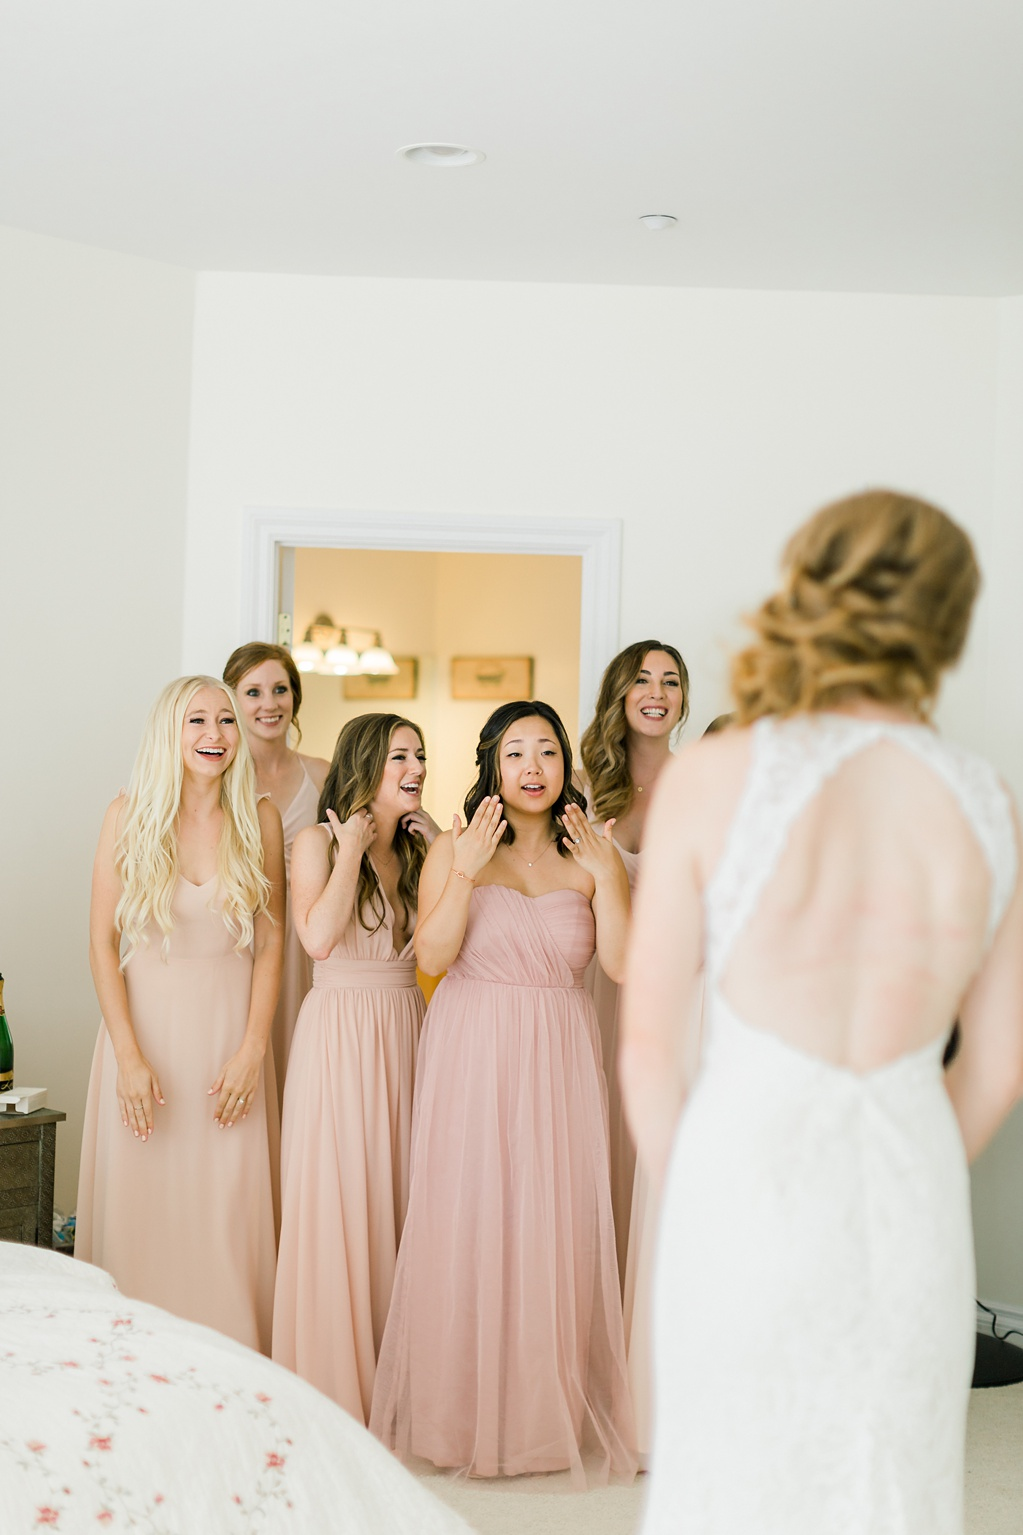 White Barn Inspired Summer Wedding In The Valley of Arroyo Grande, California by Wedding Photographer Madison Ellis (63)